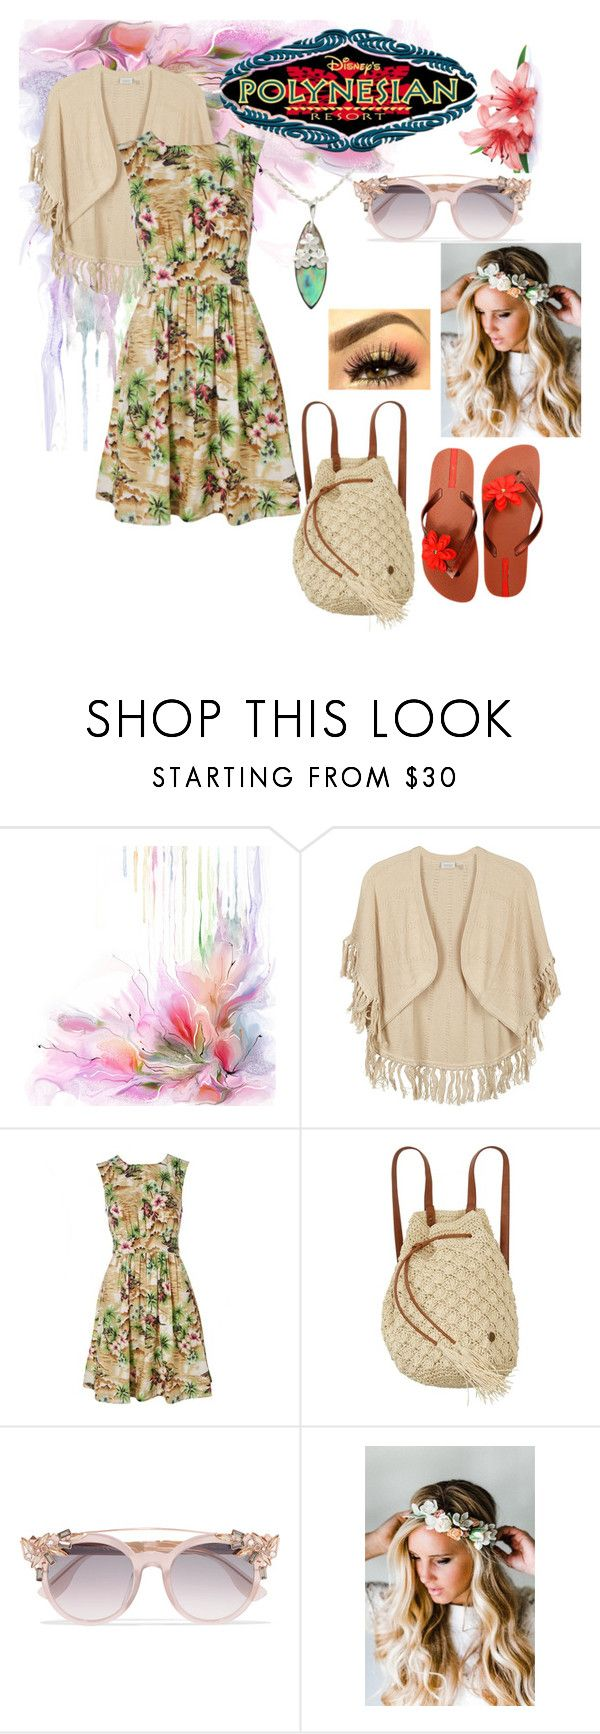 """Polynesian Resort"" by foreverdisneybounding ❤ liked on Polyvore featuring Kinross, Emily and Fin, Disney, Billabong, Jimmy Choo, Emily Rose Flower Crowns, IPANEMA, disneybound and DisneyResort"